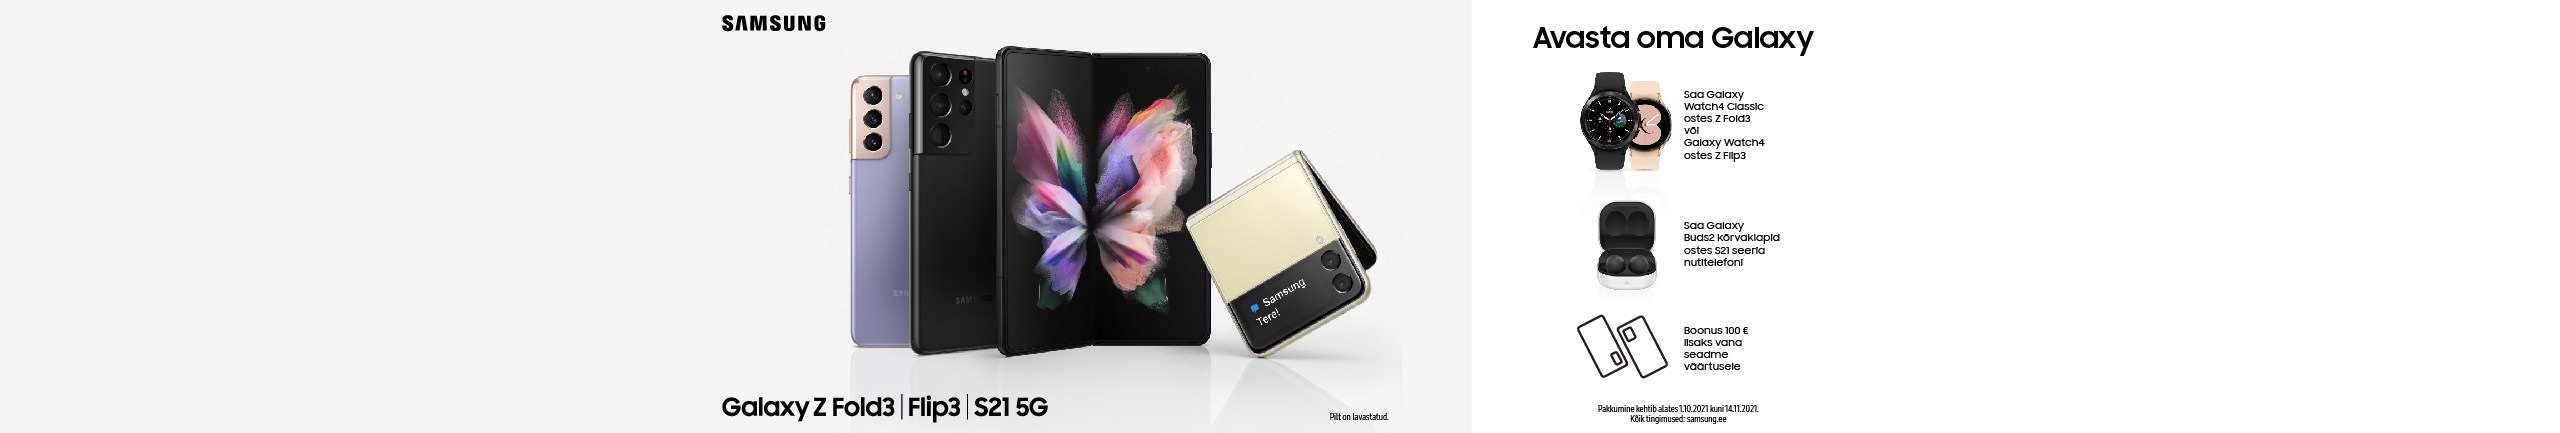 Buy Samsung Z Fold 3, Z Flip 3 or S21 series smartphone and get a complimentary gift!